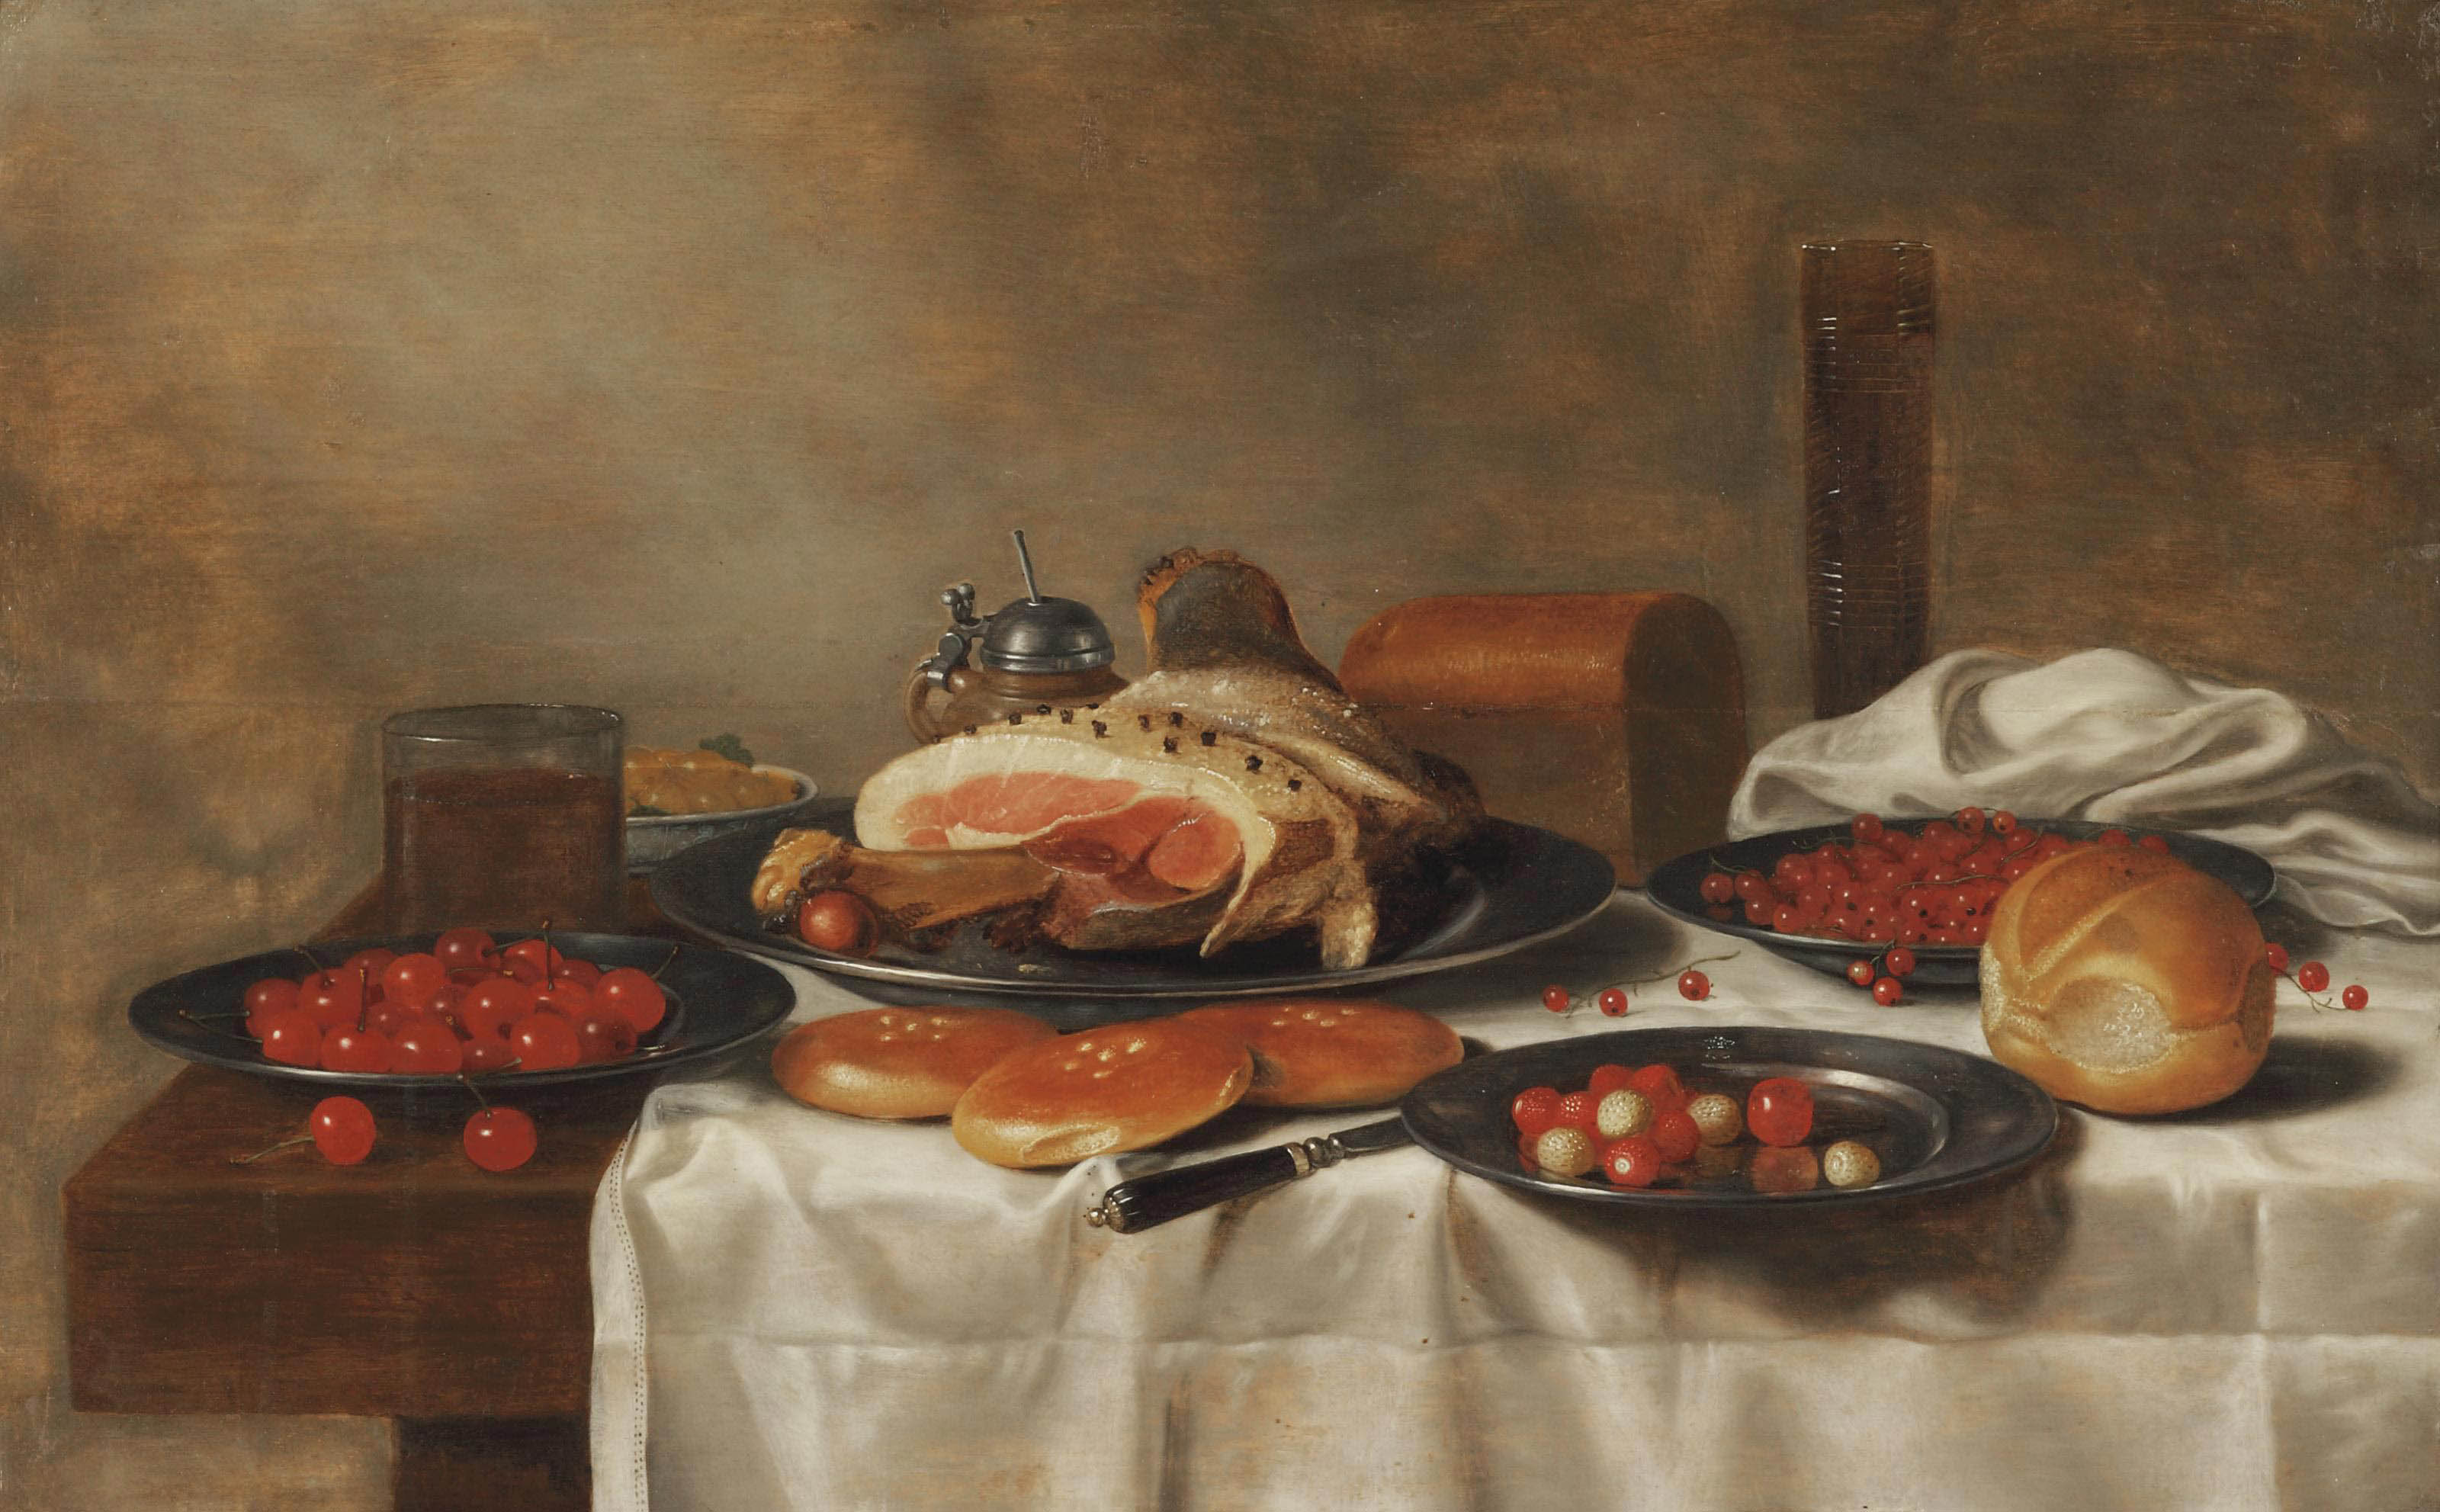 A ham on a silver plate, a glass of beer, a mustard pot and white grapes on a porcelain plate, cherries, strawberries and red currants on silver plates, rolls of bread, a knife and a 'pasglas', all on a partially draped table